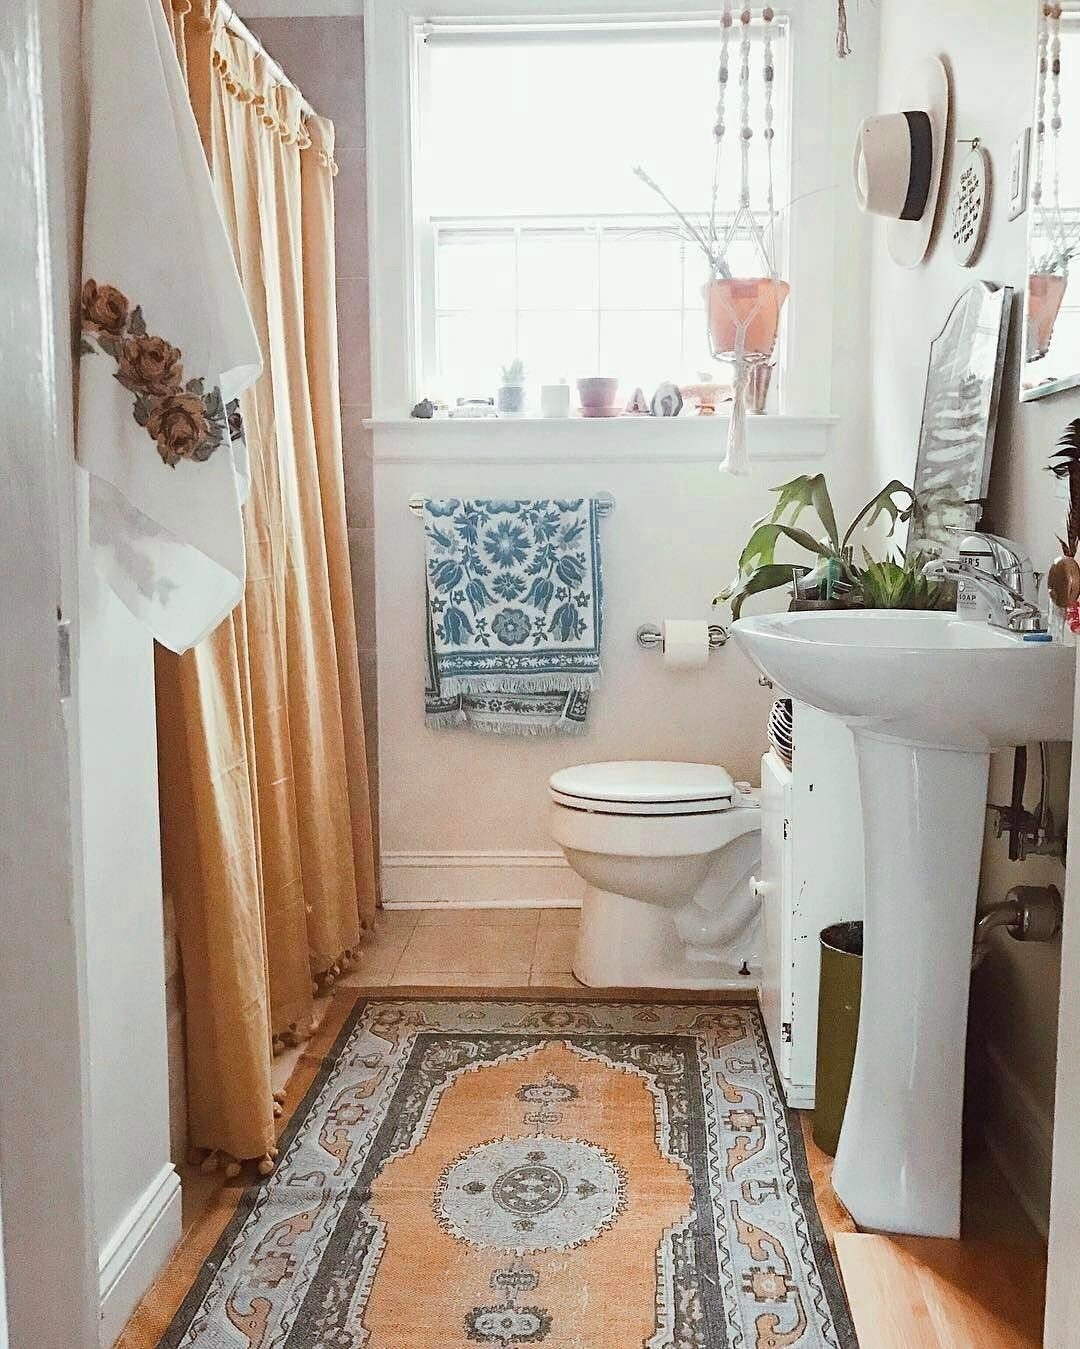 Boho Bathroom Urban Outfitters Urbanoutfitters On Instagram